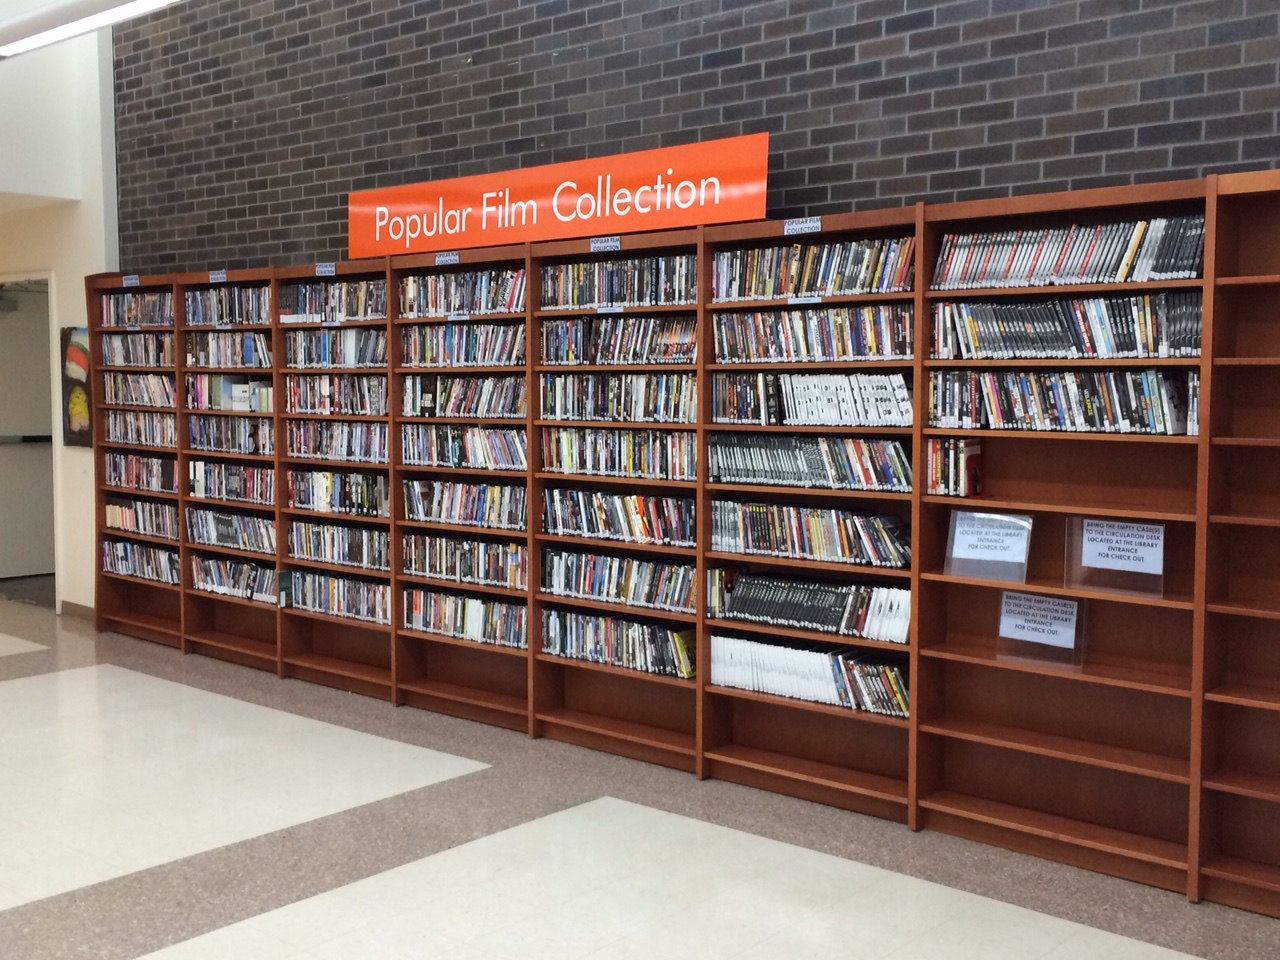 Popular film collection shelves.